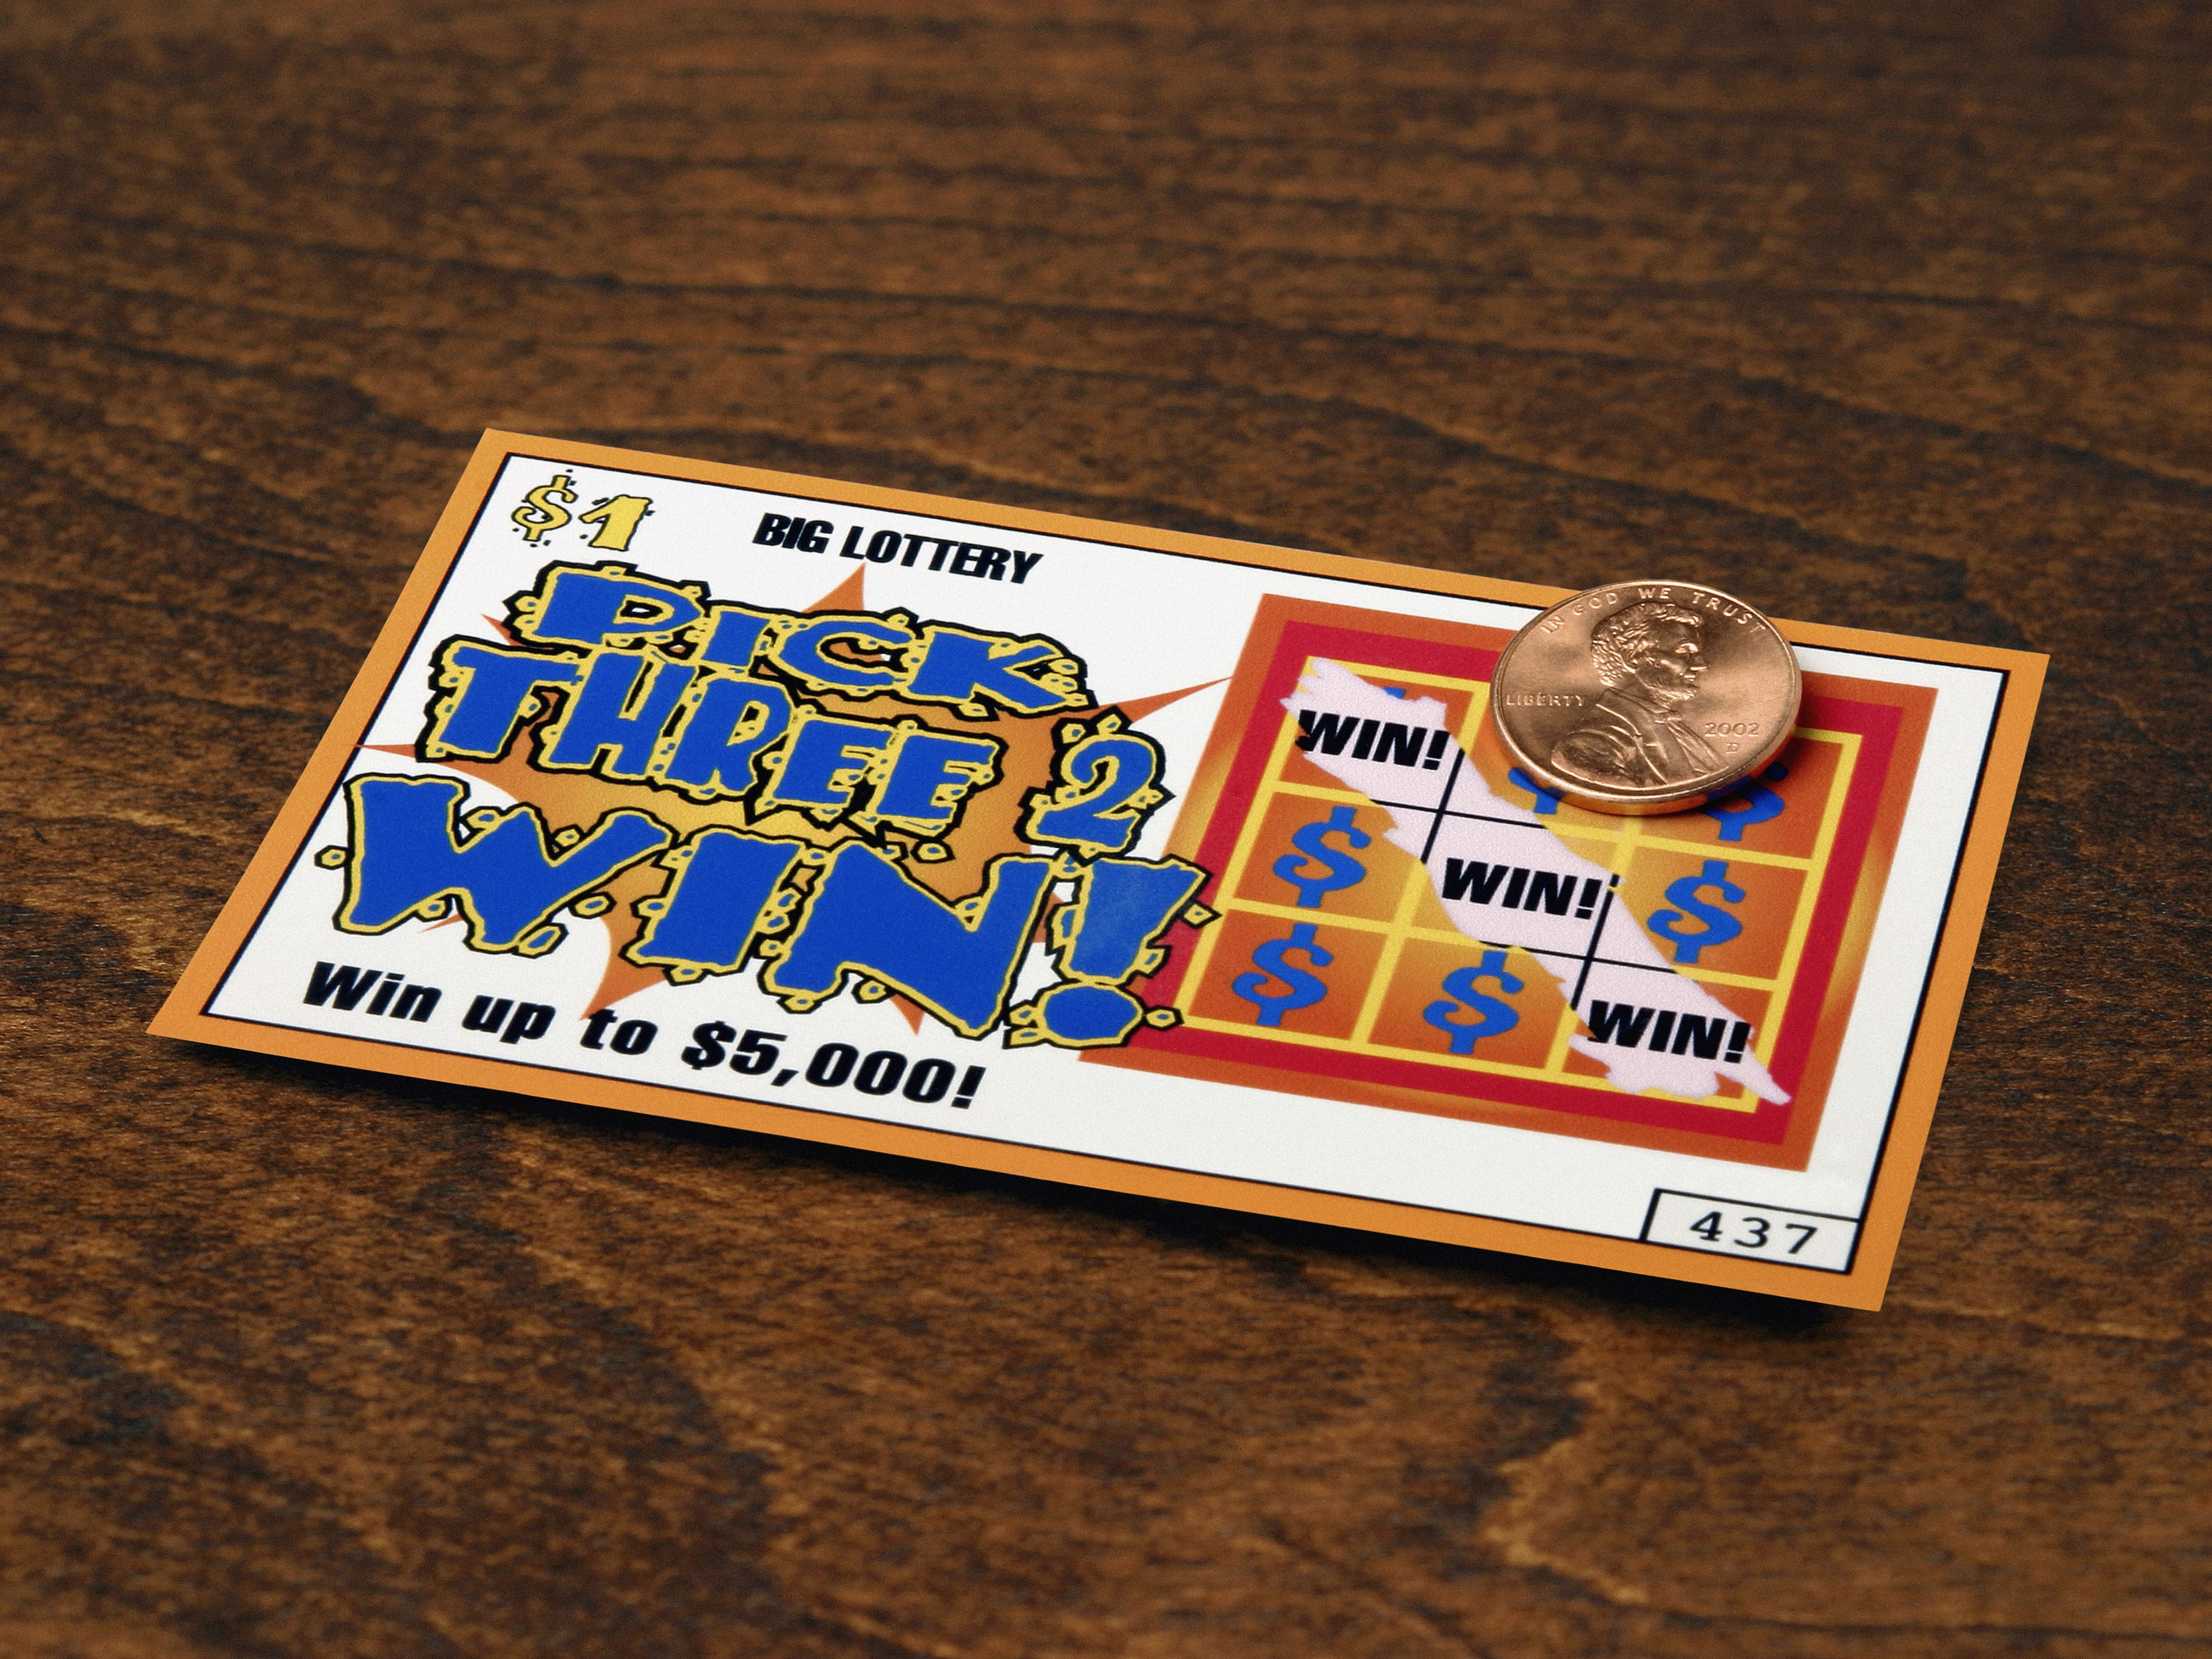 Scratched off lottery ticket exposing winning tick